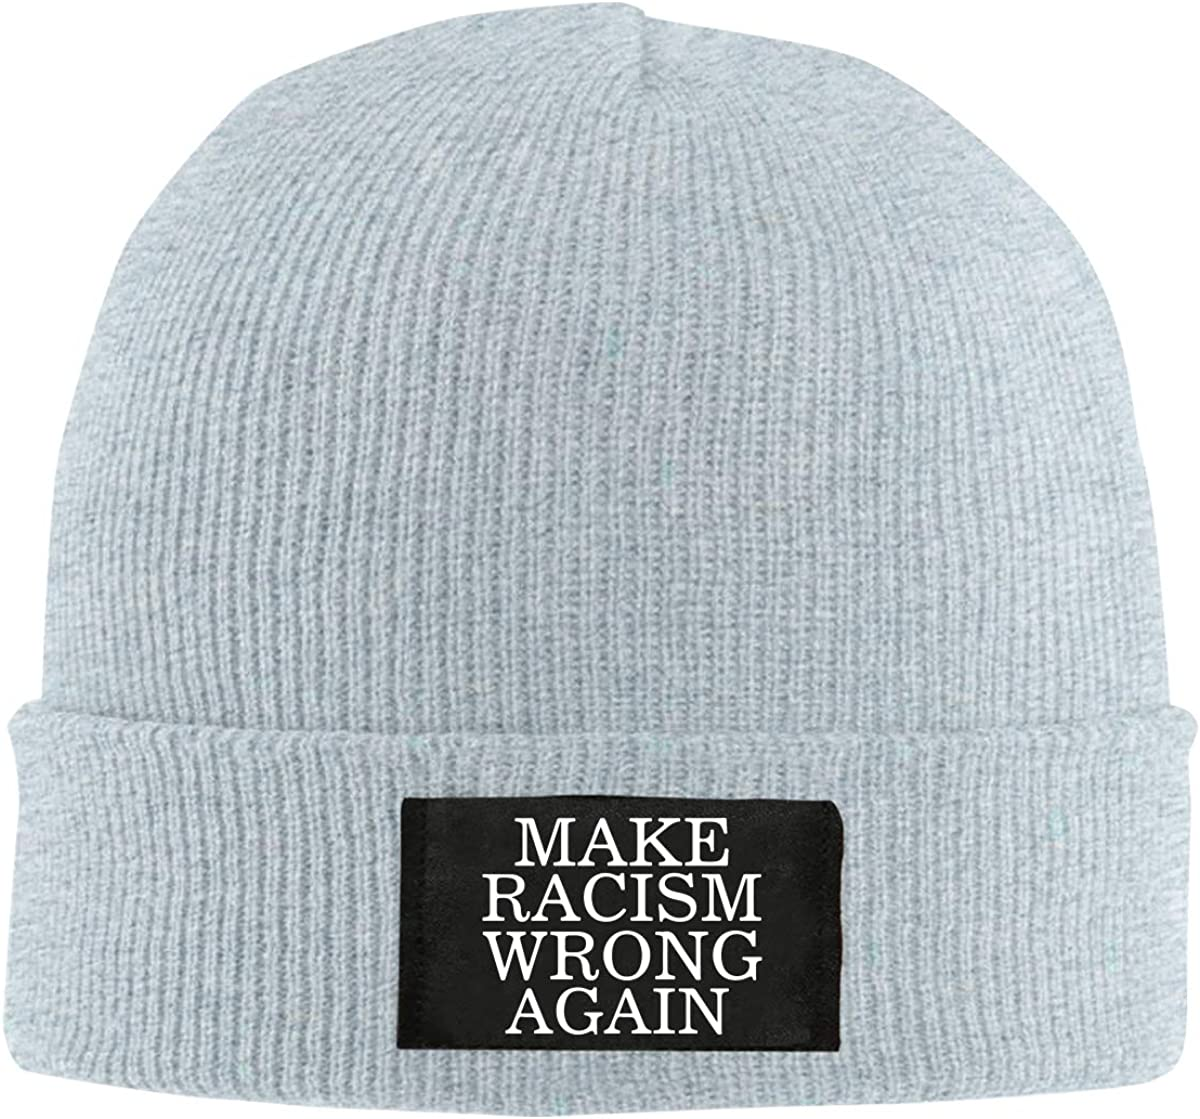 Make Racism Wrong Again Unisex Knitted Hat Fashion Warm Beanie Cap